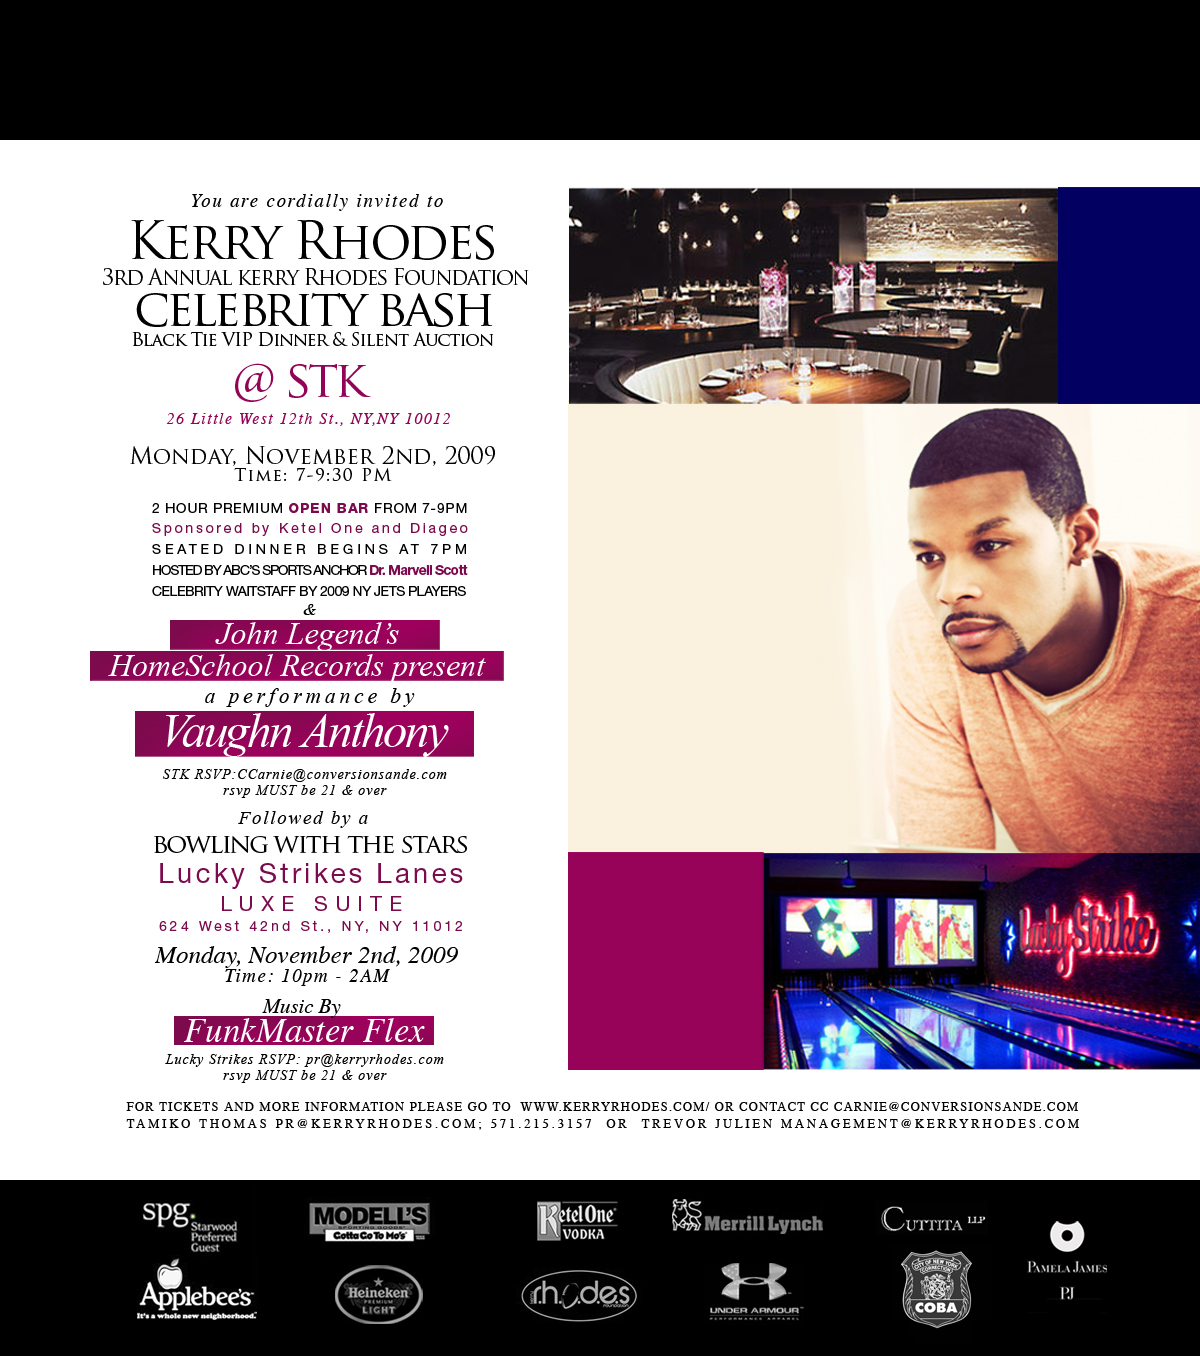 3rd Annual Kerry RHODES Foundation Celebrity Events to be held in NYC 11/2/2009